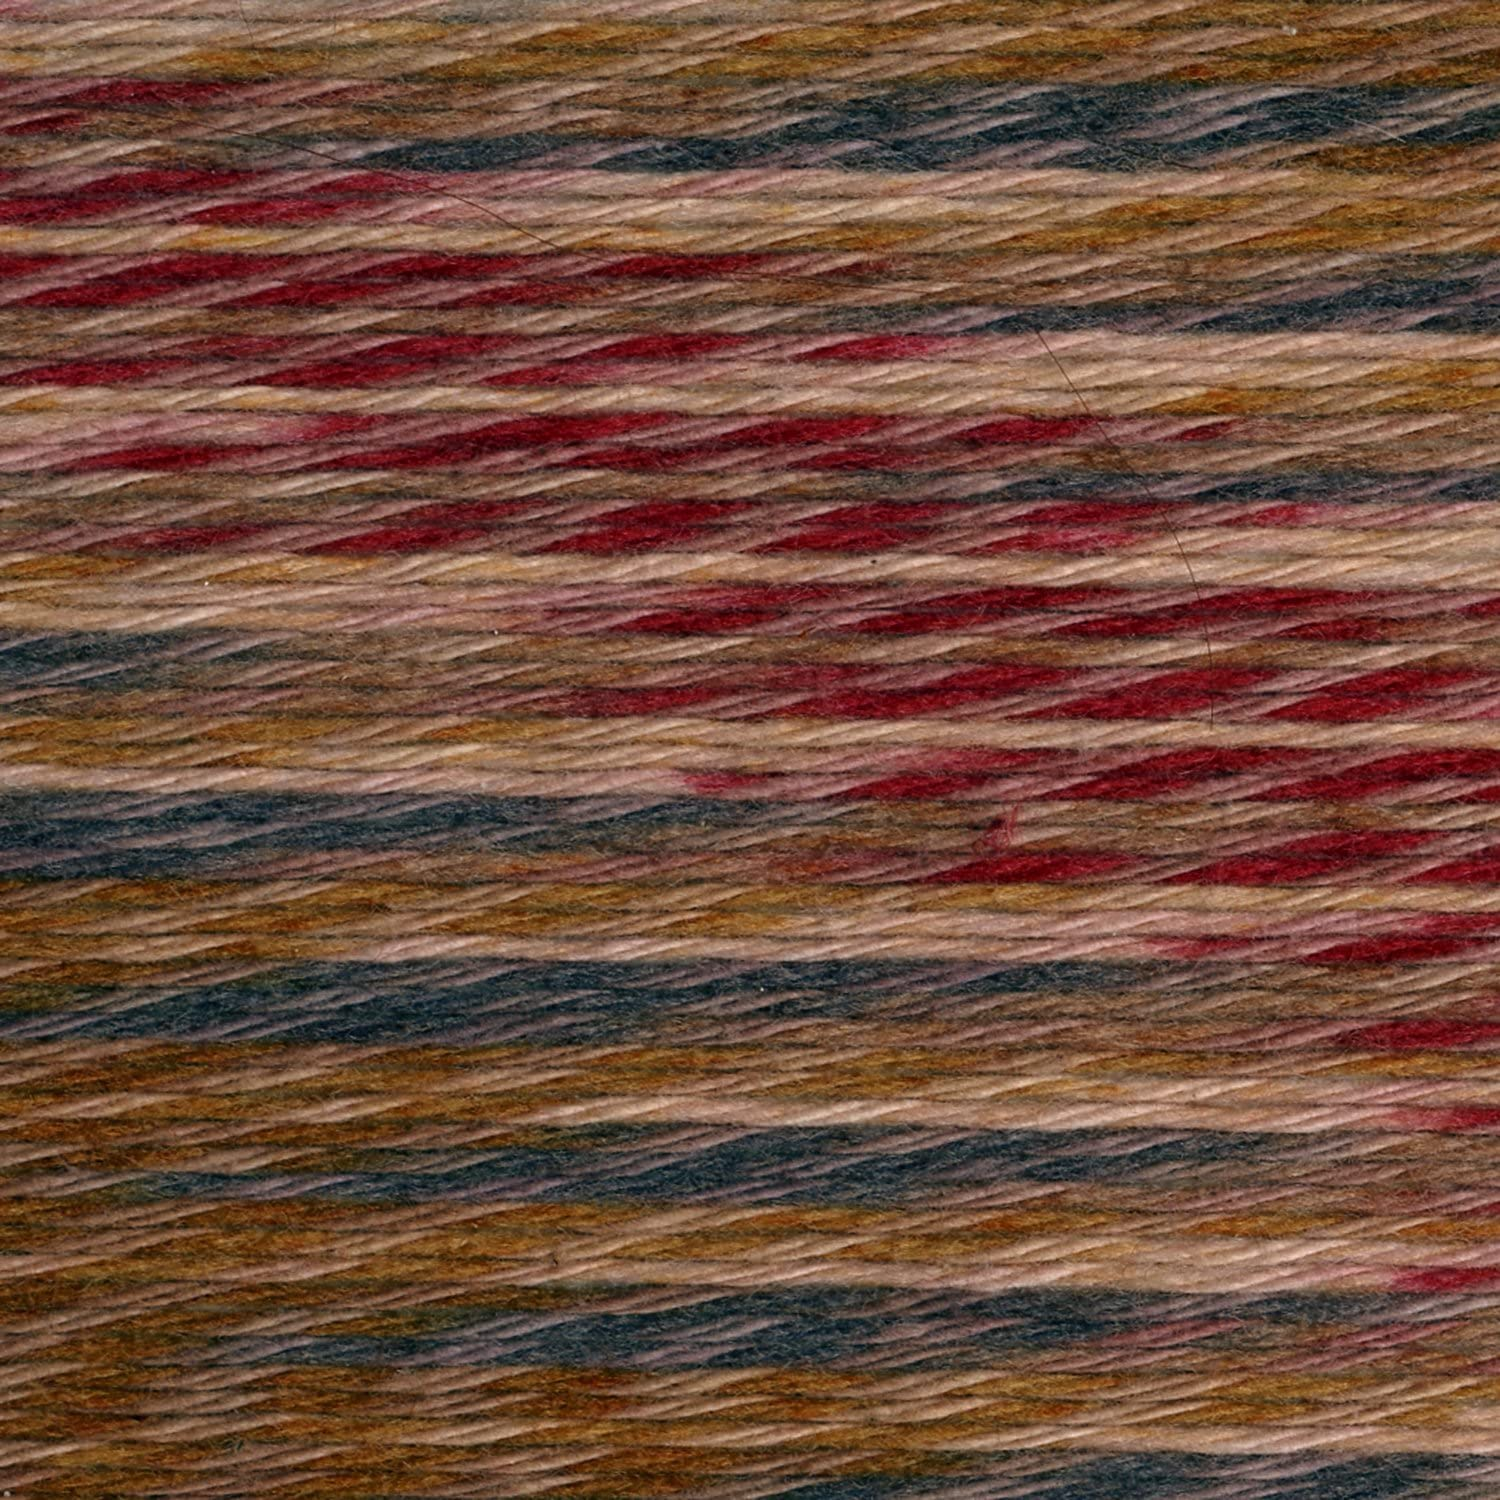 Lion Brand Yarn 756-711 Comfy Cotton Blend Yarn Fireside